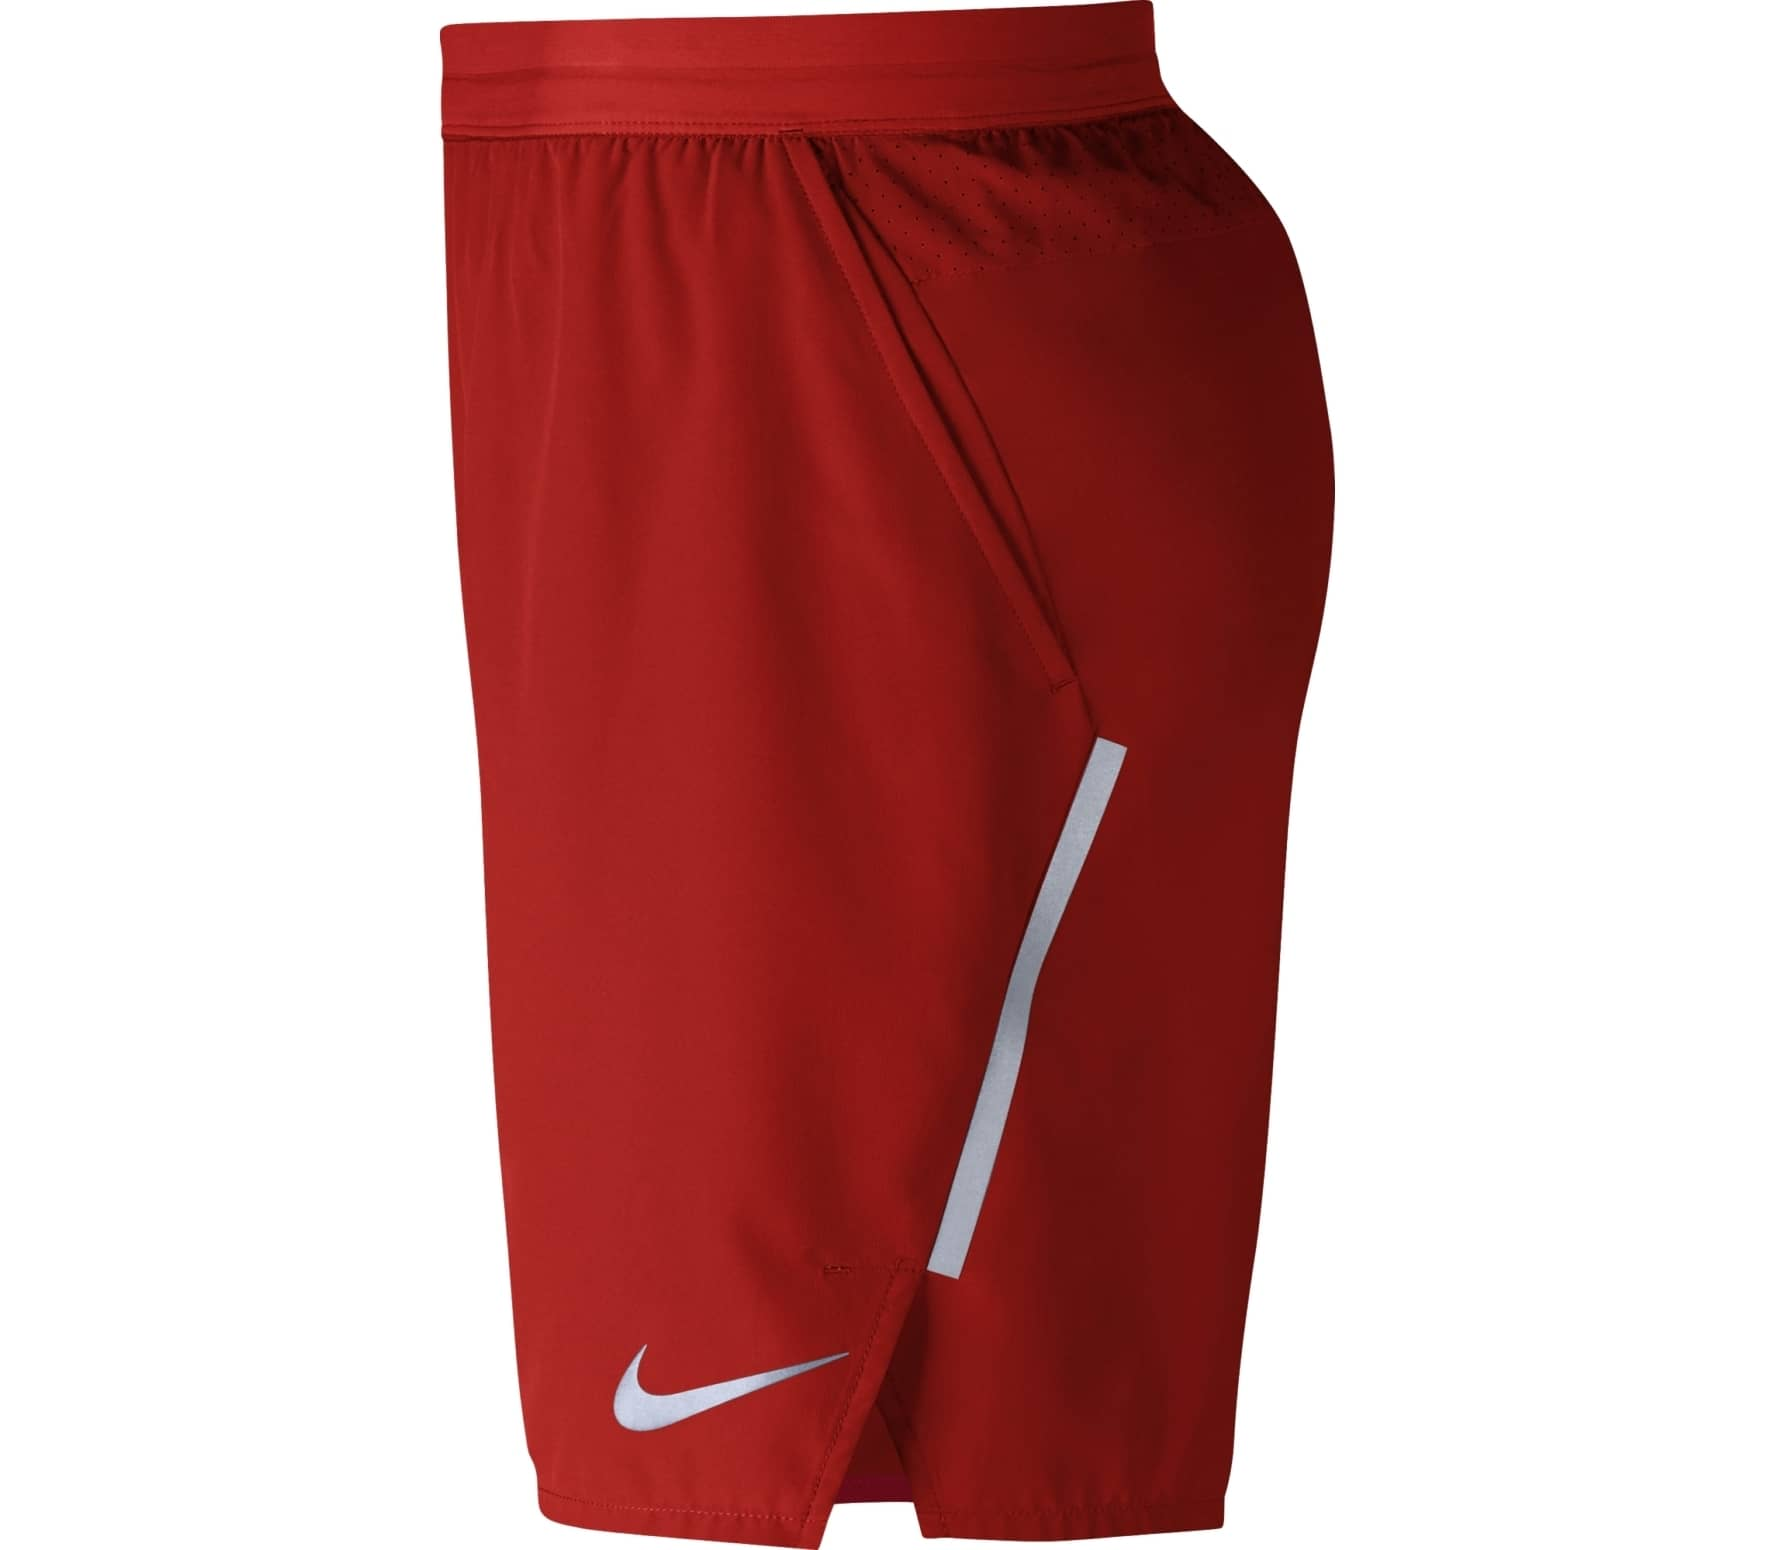 super cheap wholesale online new high quality Nike - Distance 7 inch short de running pour hommes (rouge)